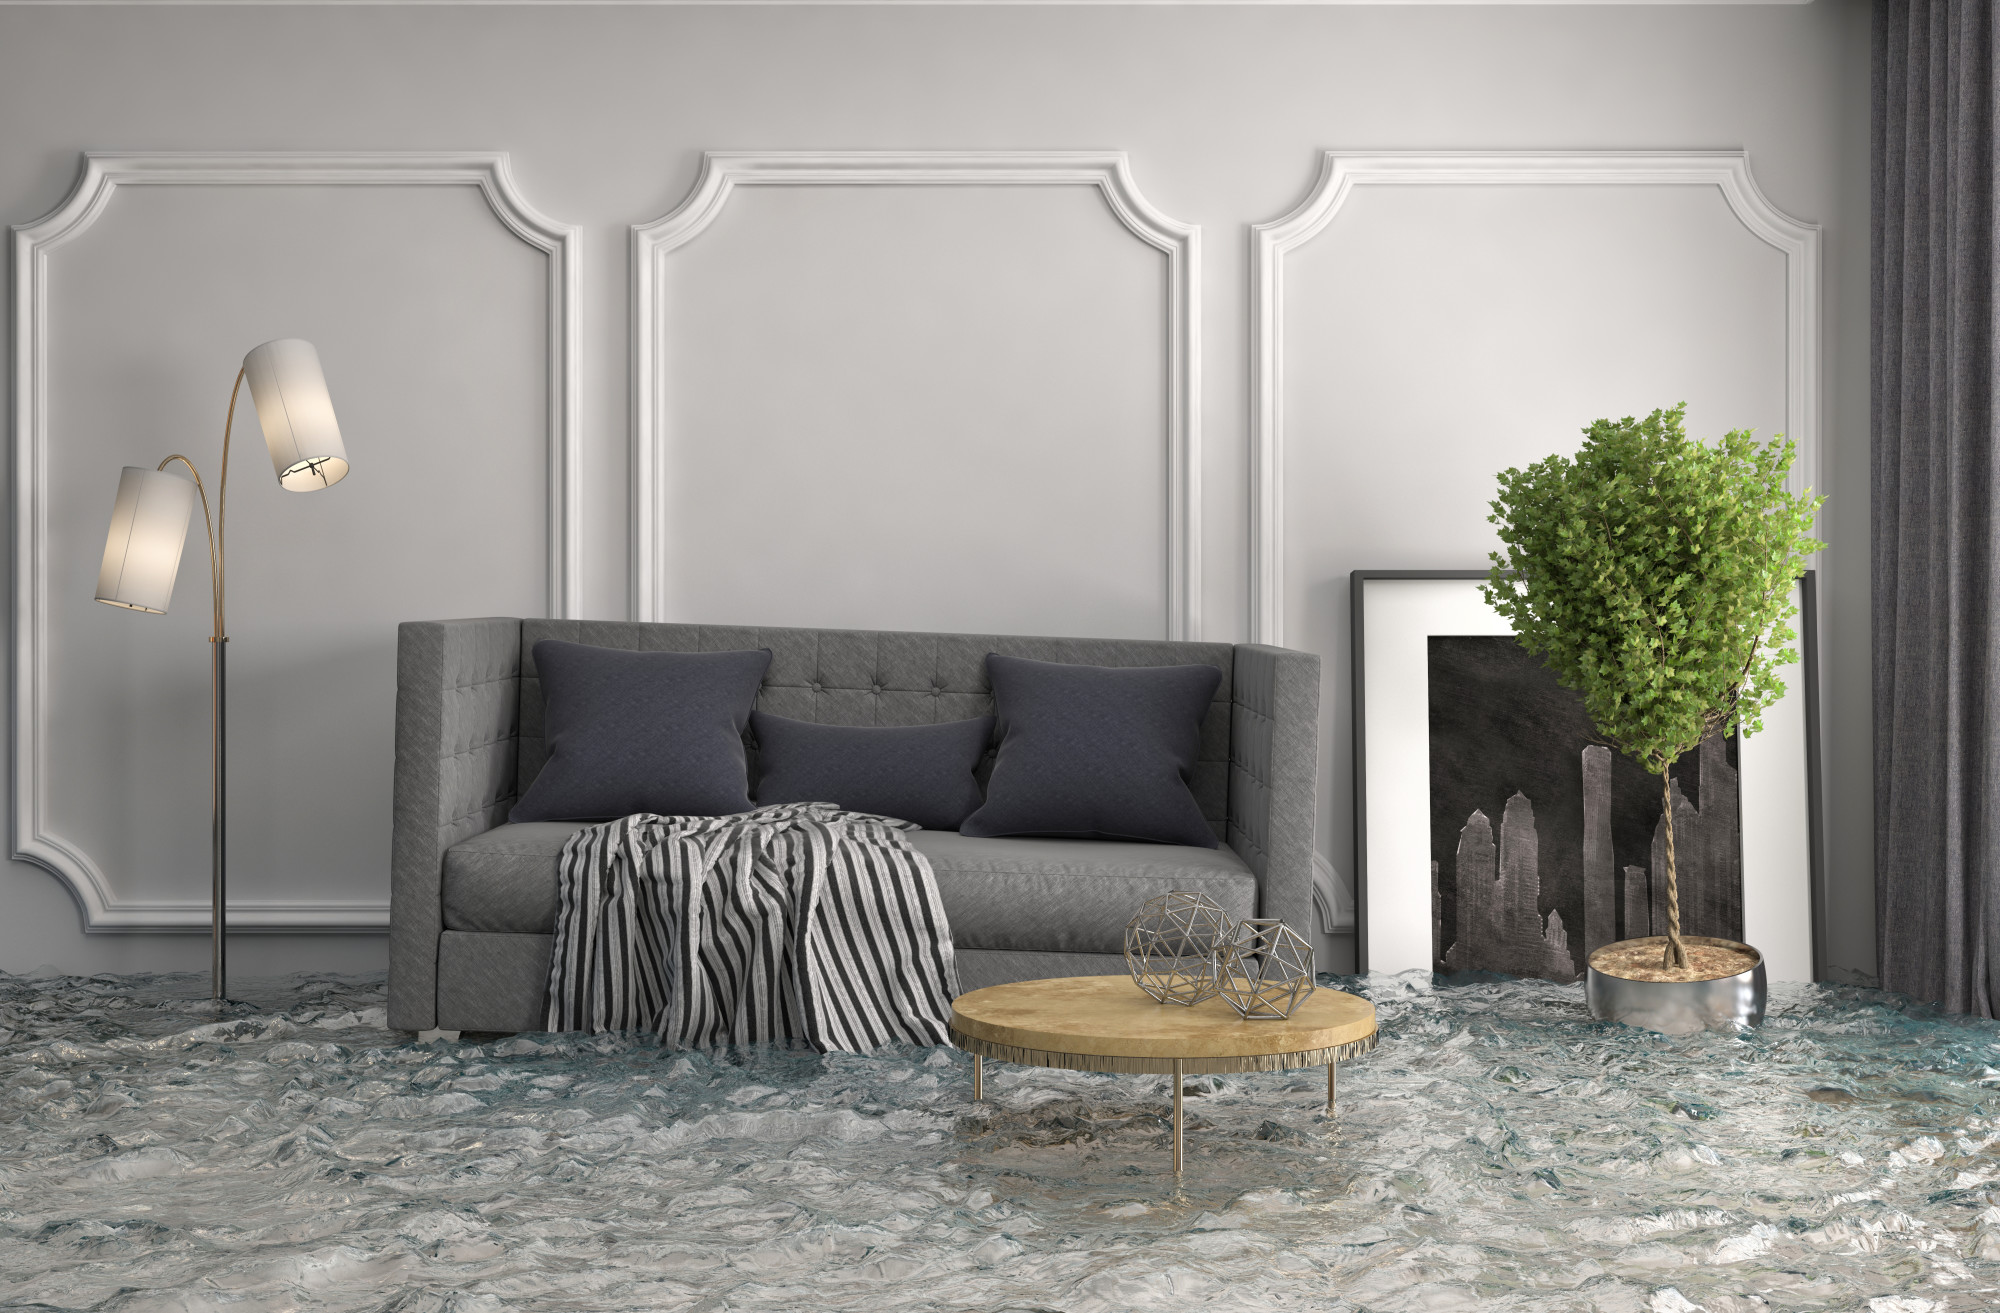 How to Prevent Your Home From Flood Damage